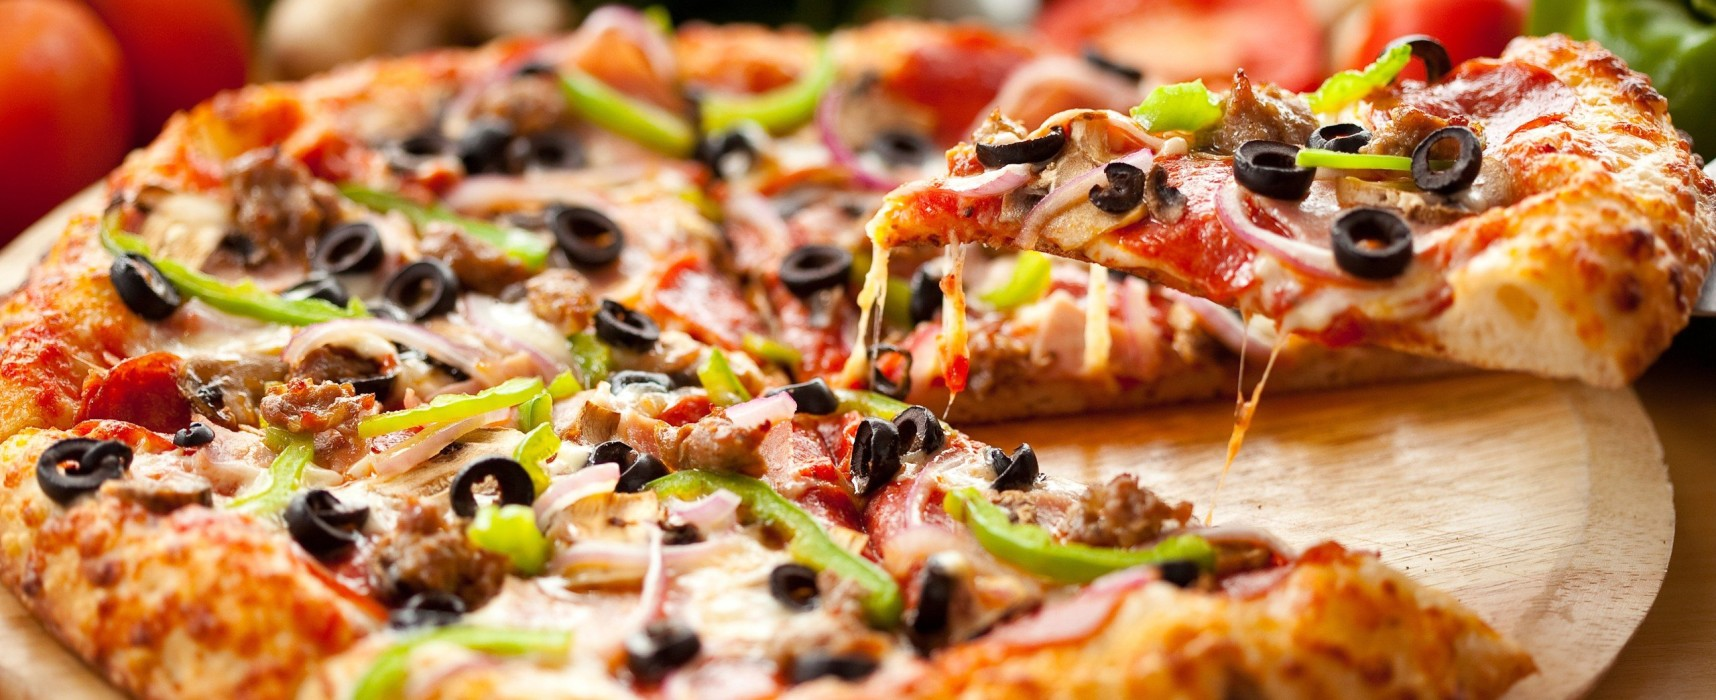 Let's Make a Healthier Pizza